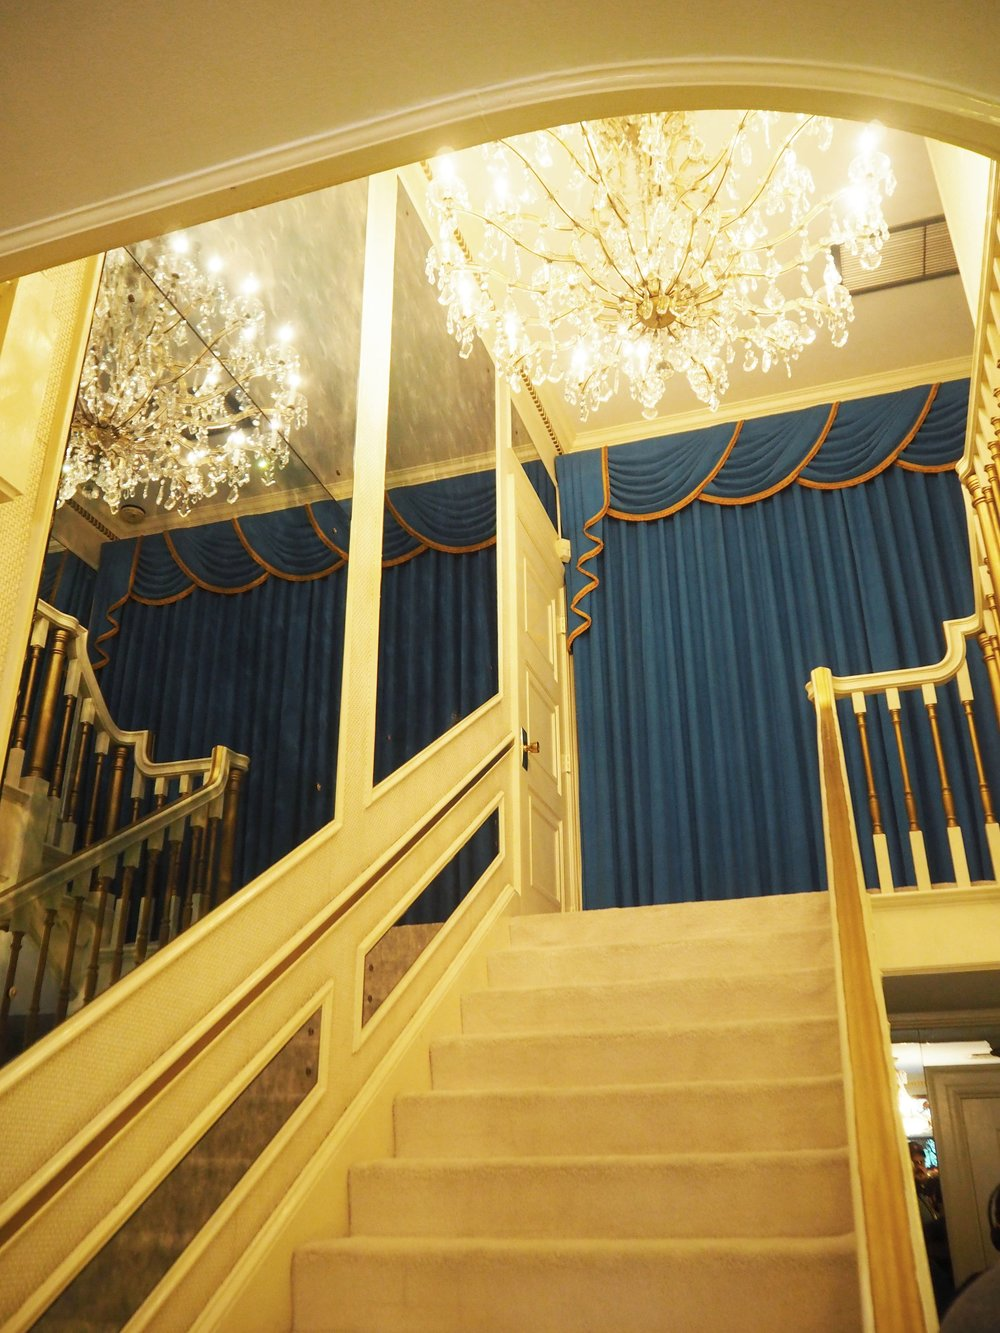 The hallway inside Graceland {Elvis Presley's home, in Memphis Tennessee}. To read more and see more pics, click here.